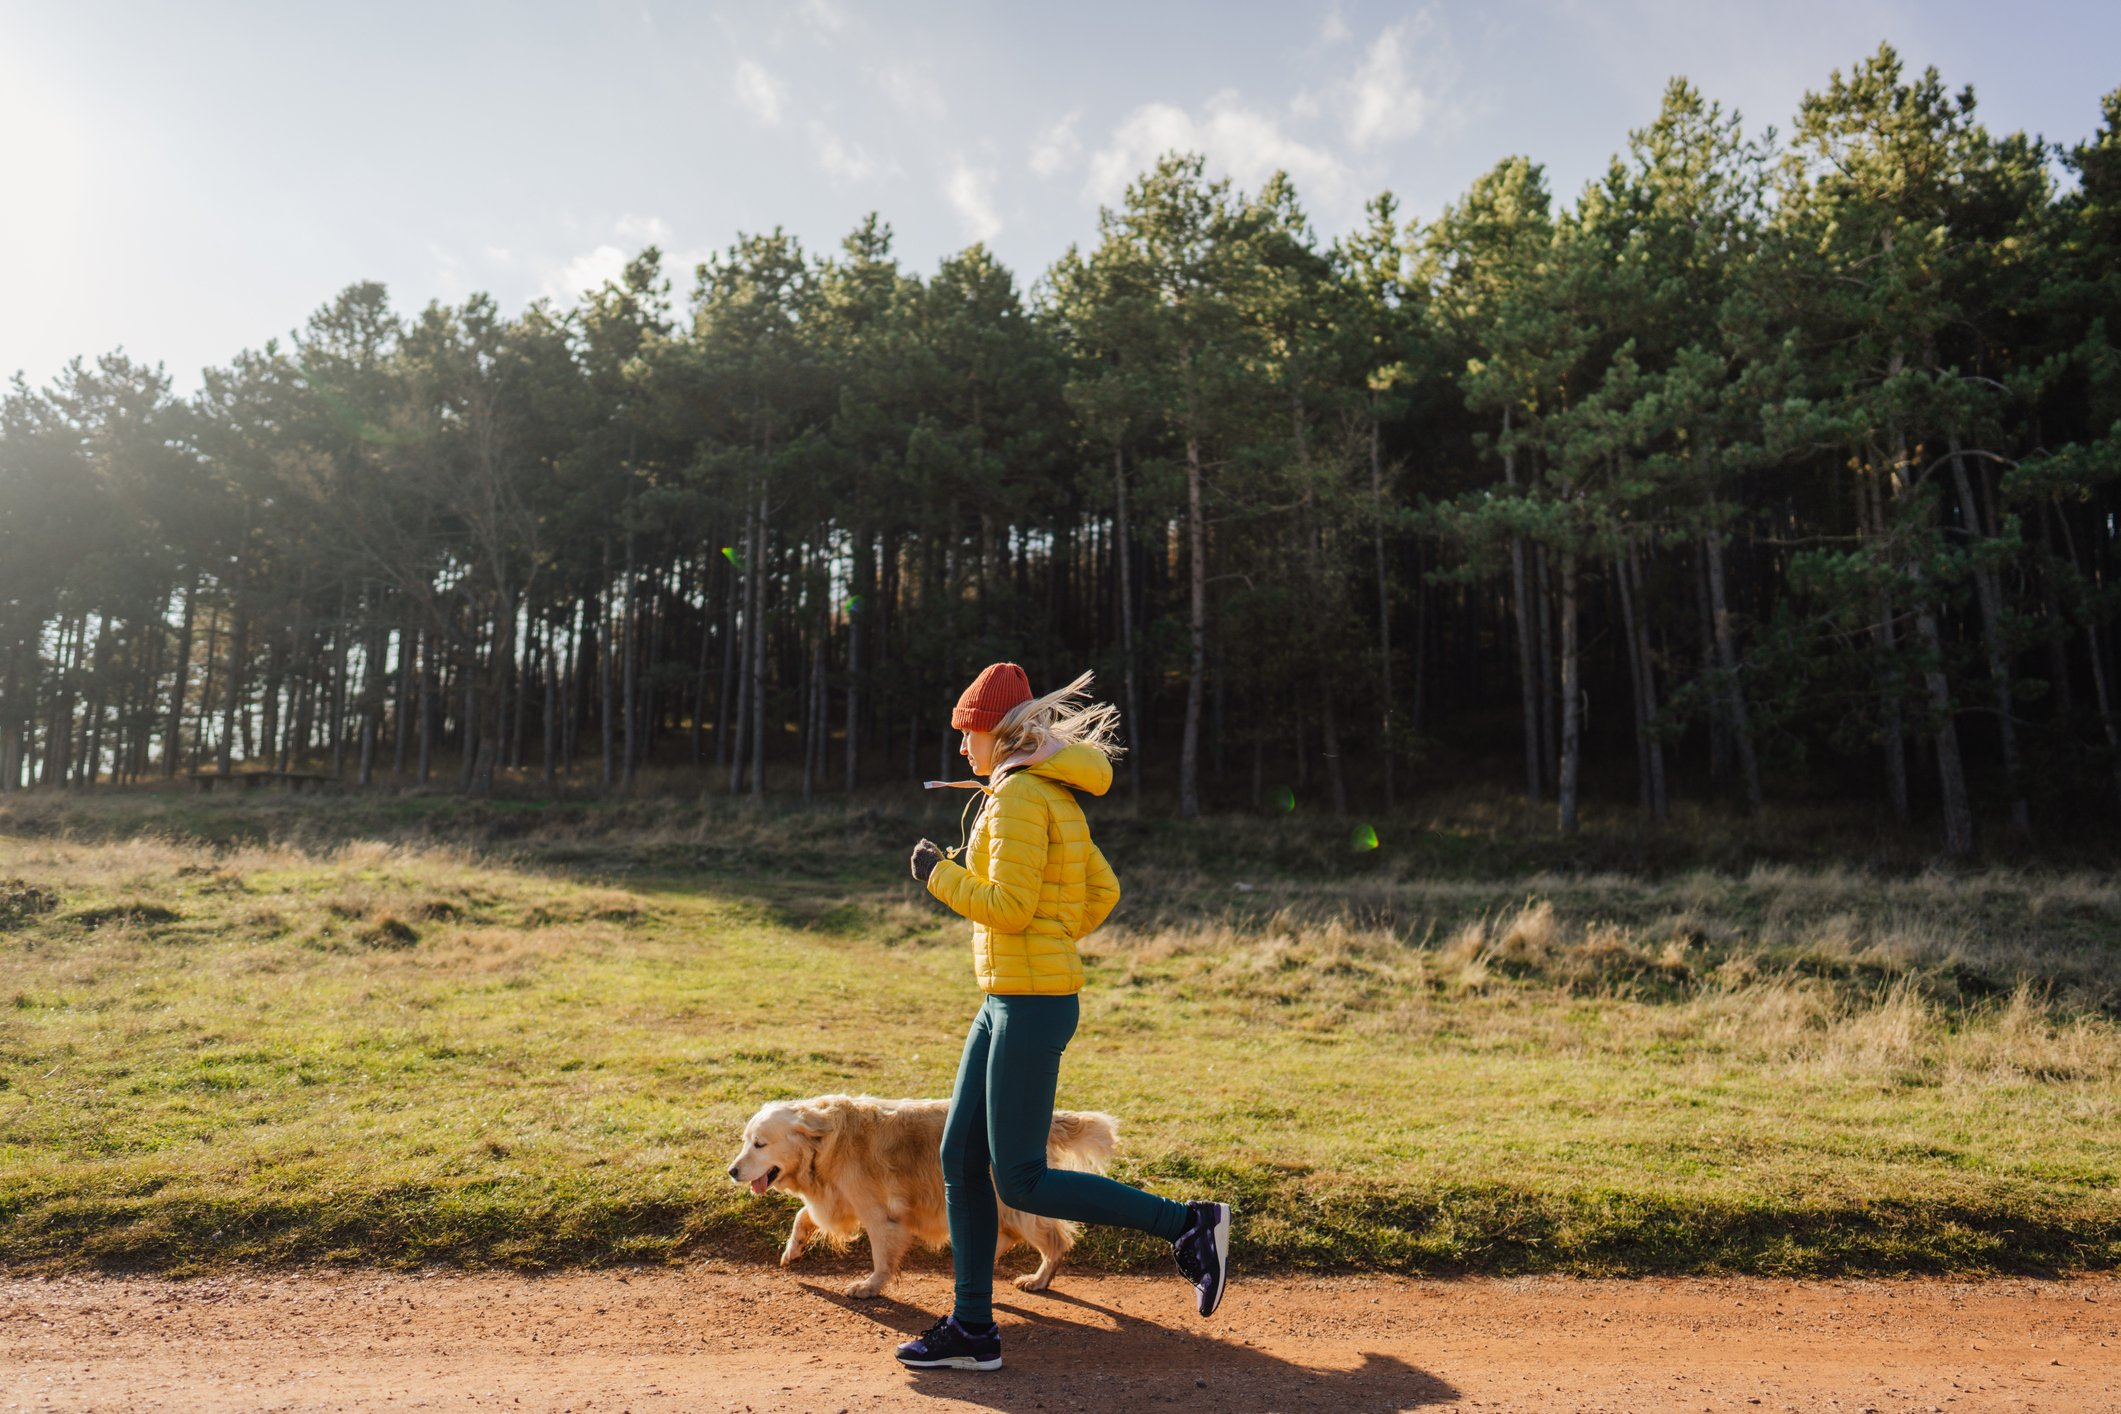 Running Rural: 3 Basic Safety Tips for Country Routes